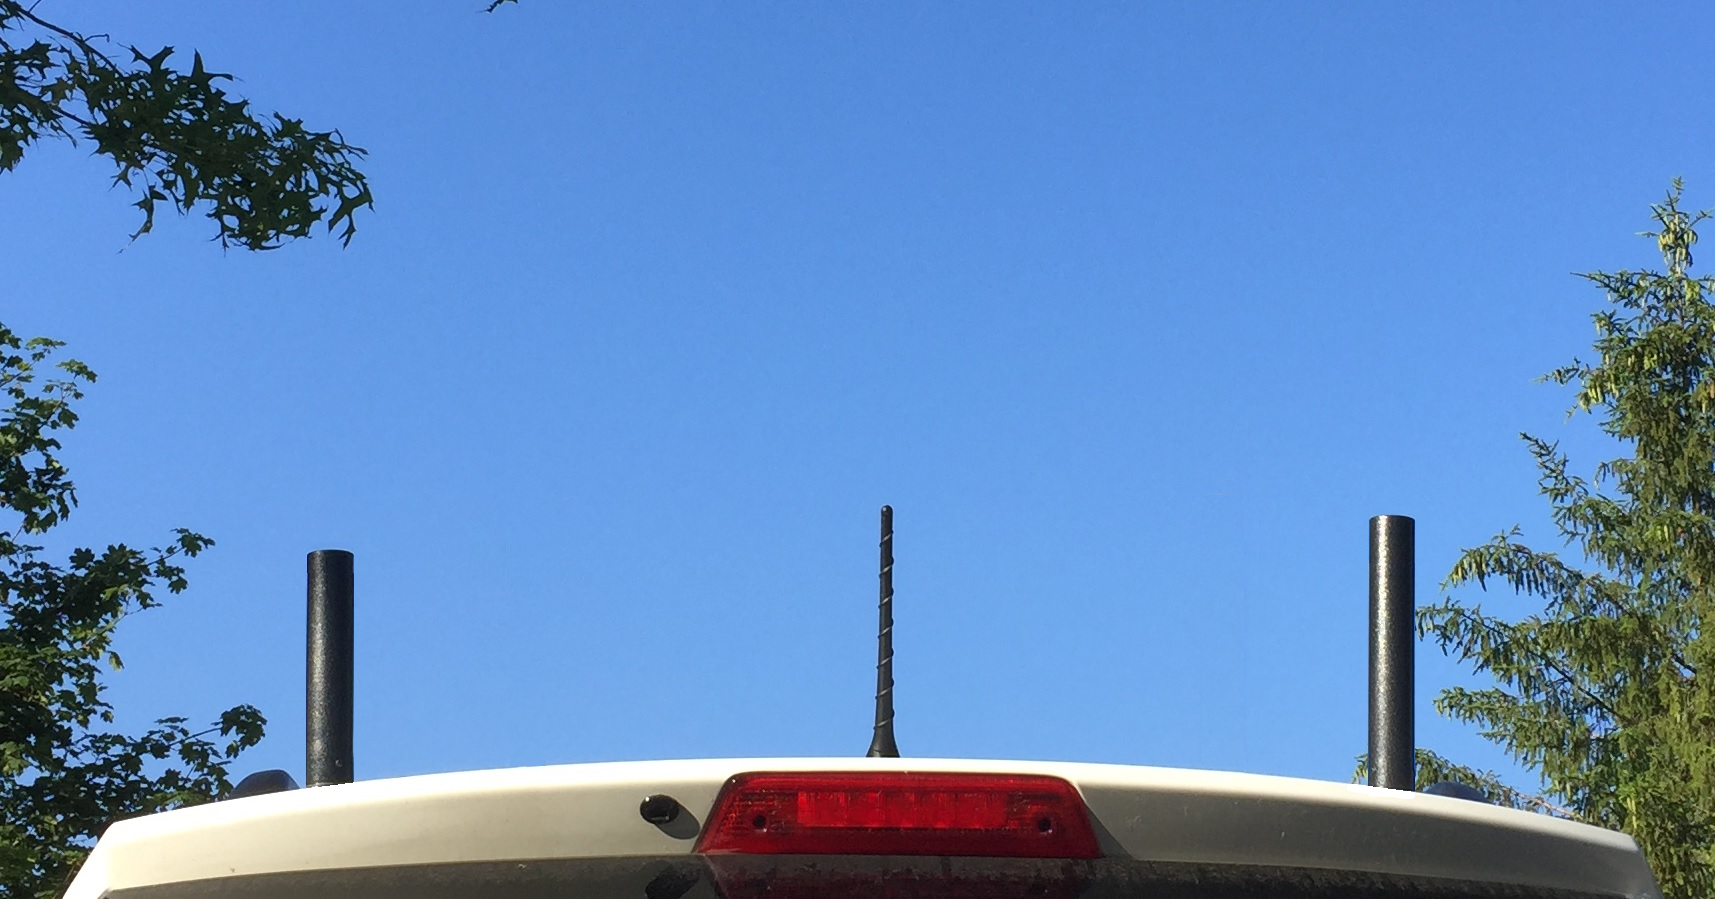 COMPACtenna Photo 2M and SCAN-III antennas on Car AT CORNERS